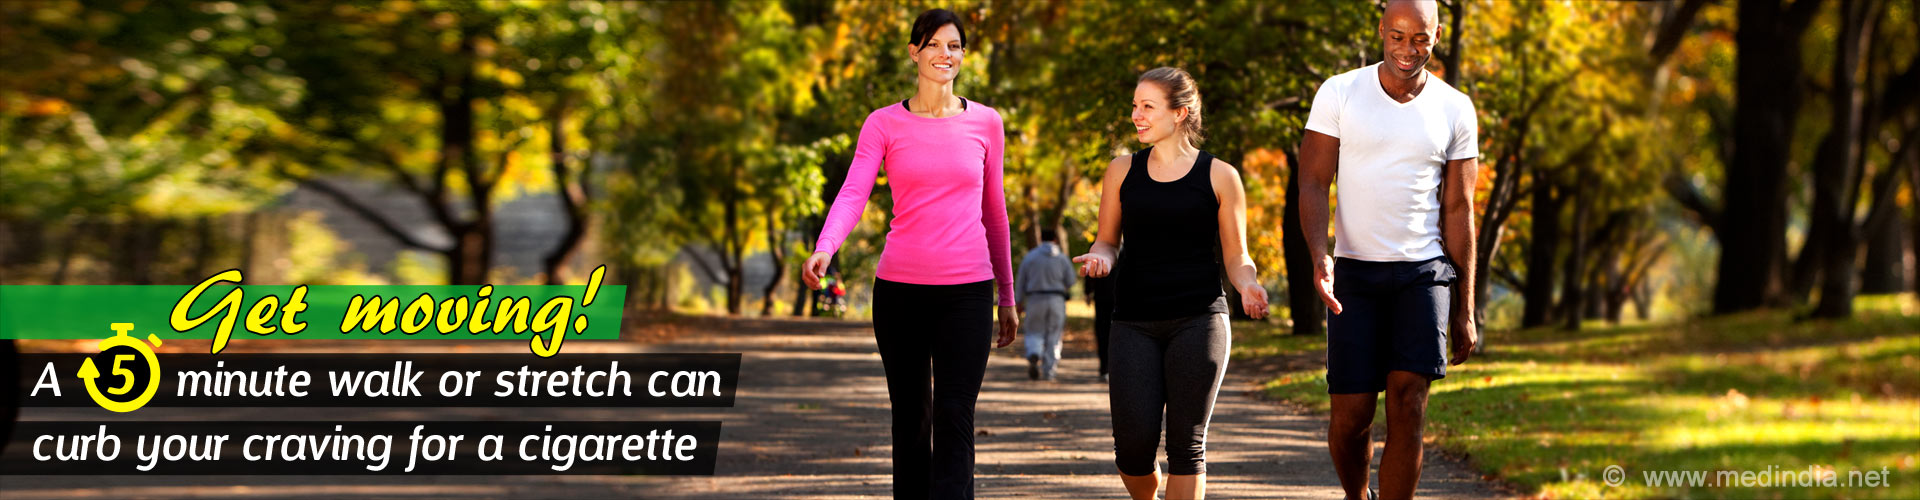 Get moving! A 5 minute walk or stretch can curb your craving for a cigarette